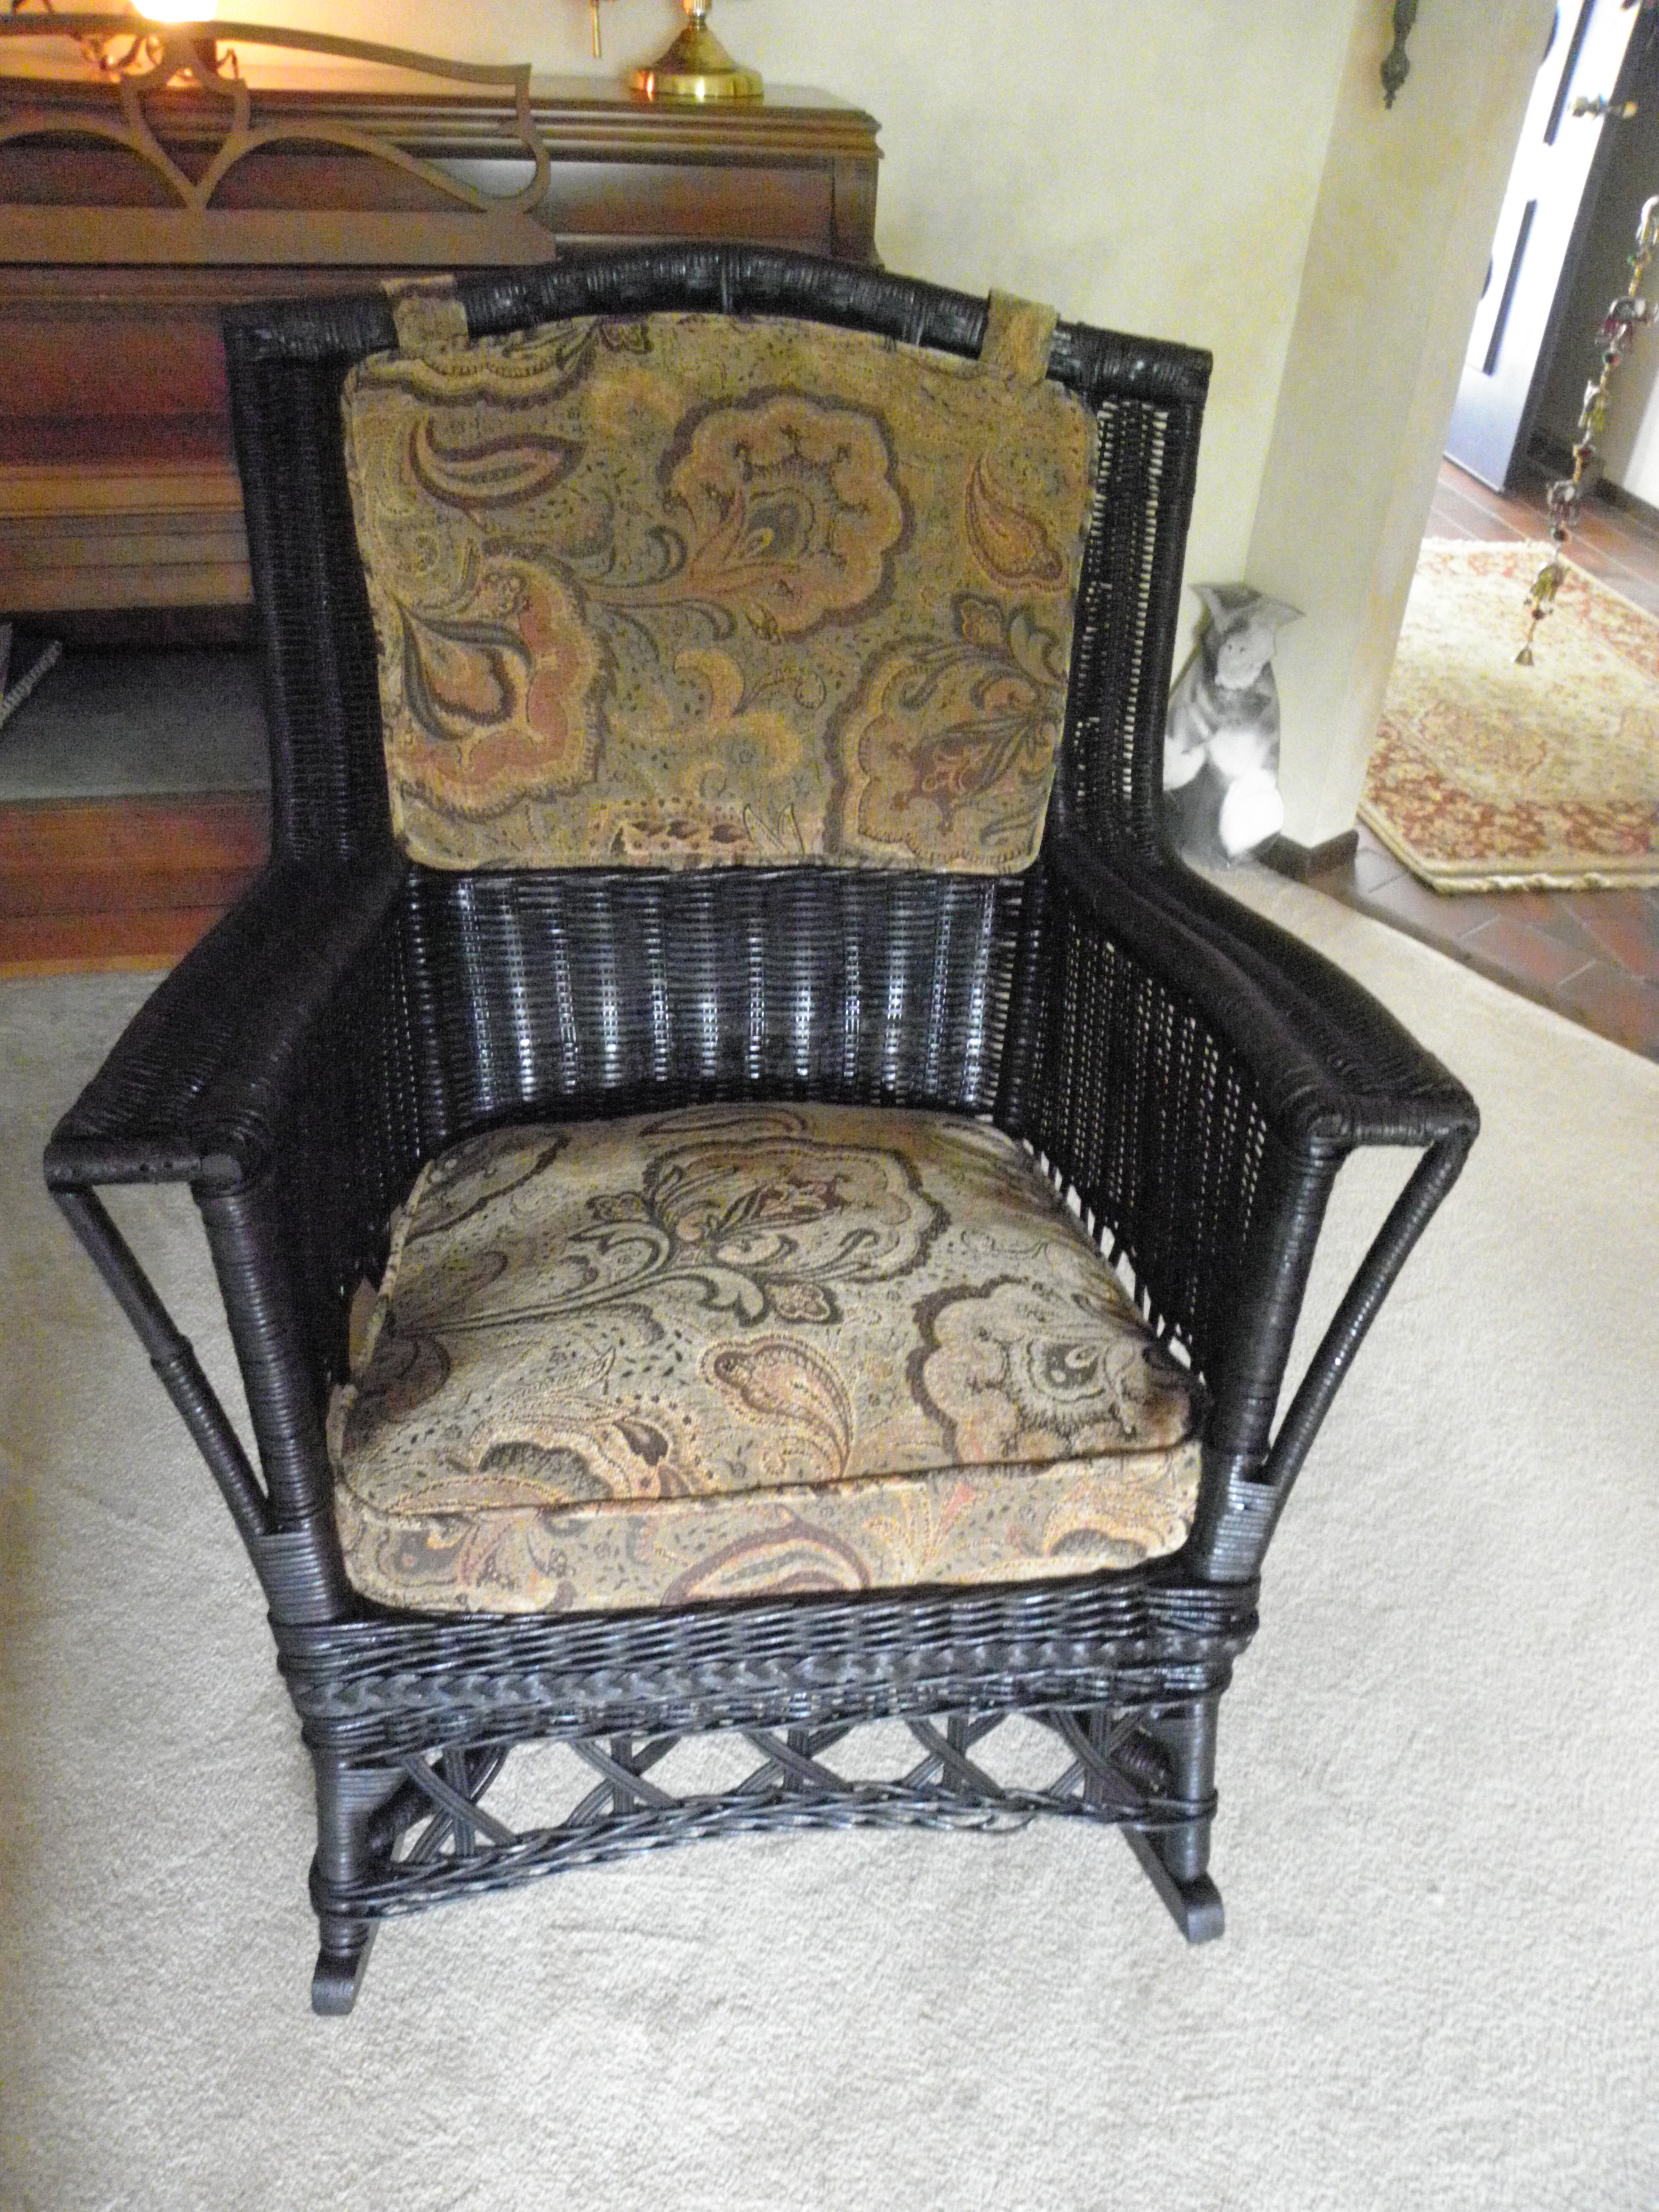 Vintage Wicker Chairs Reupholstered Antique Wicker Rocker | Ginny's Windows